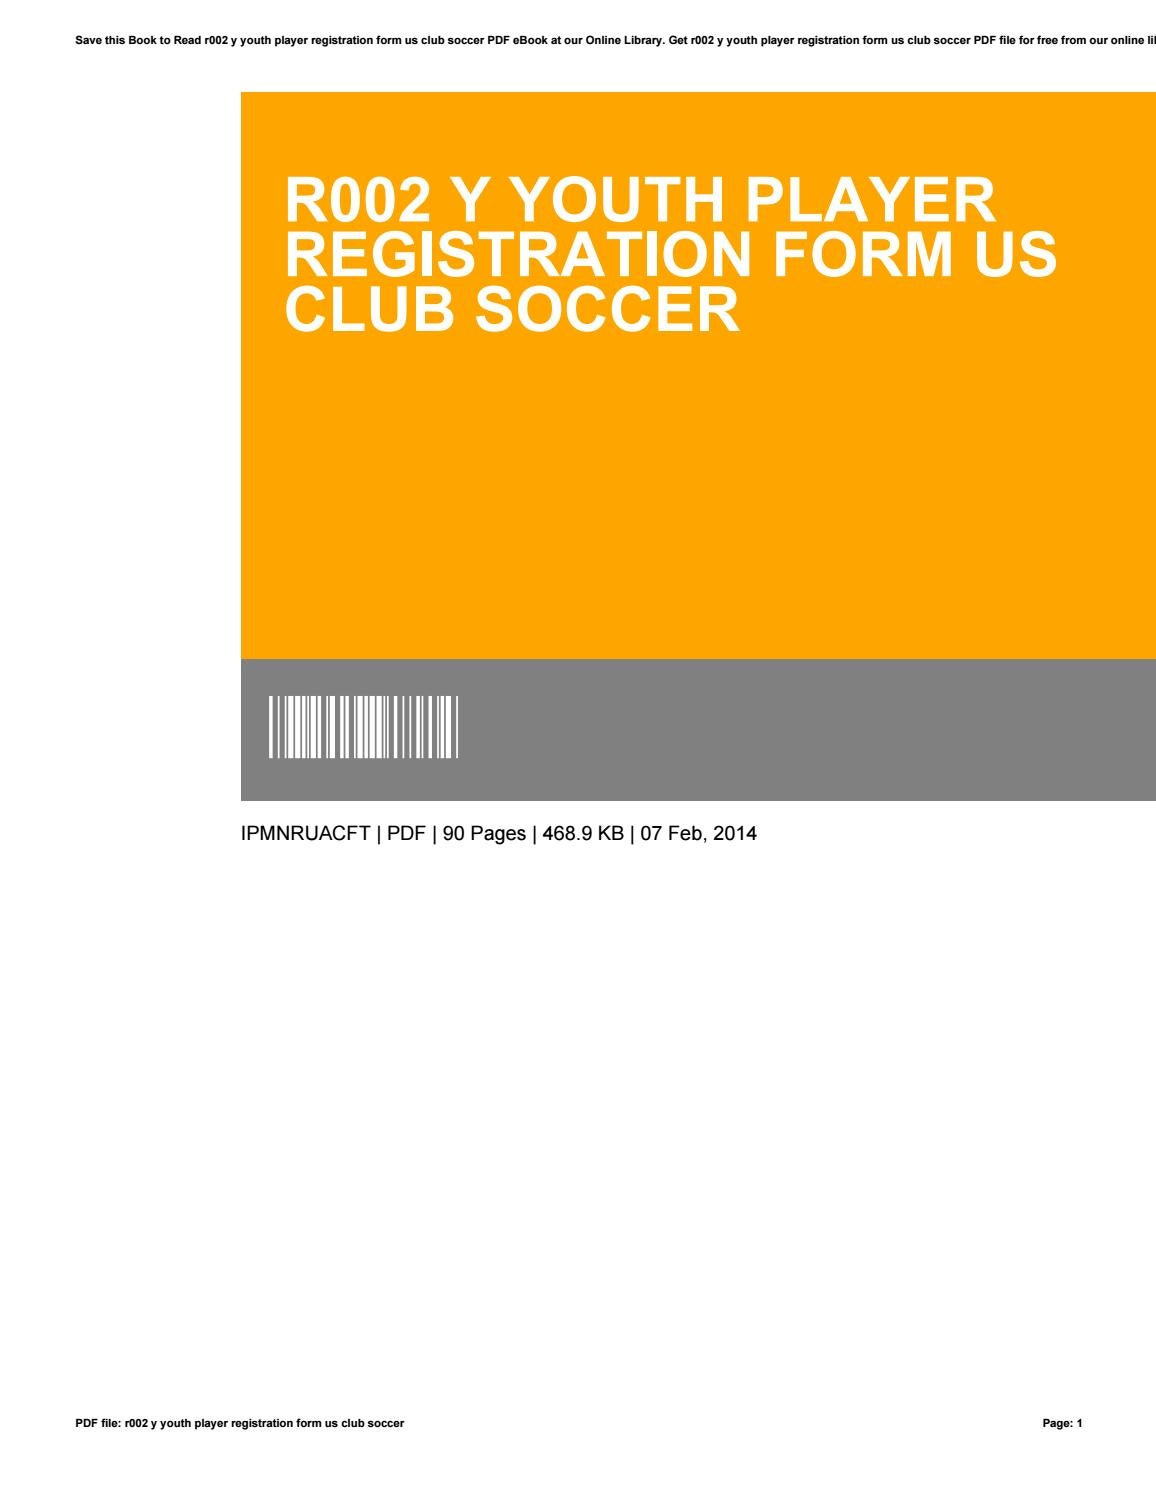 R002 y youth player registration form us club soccer by ...